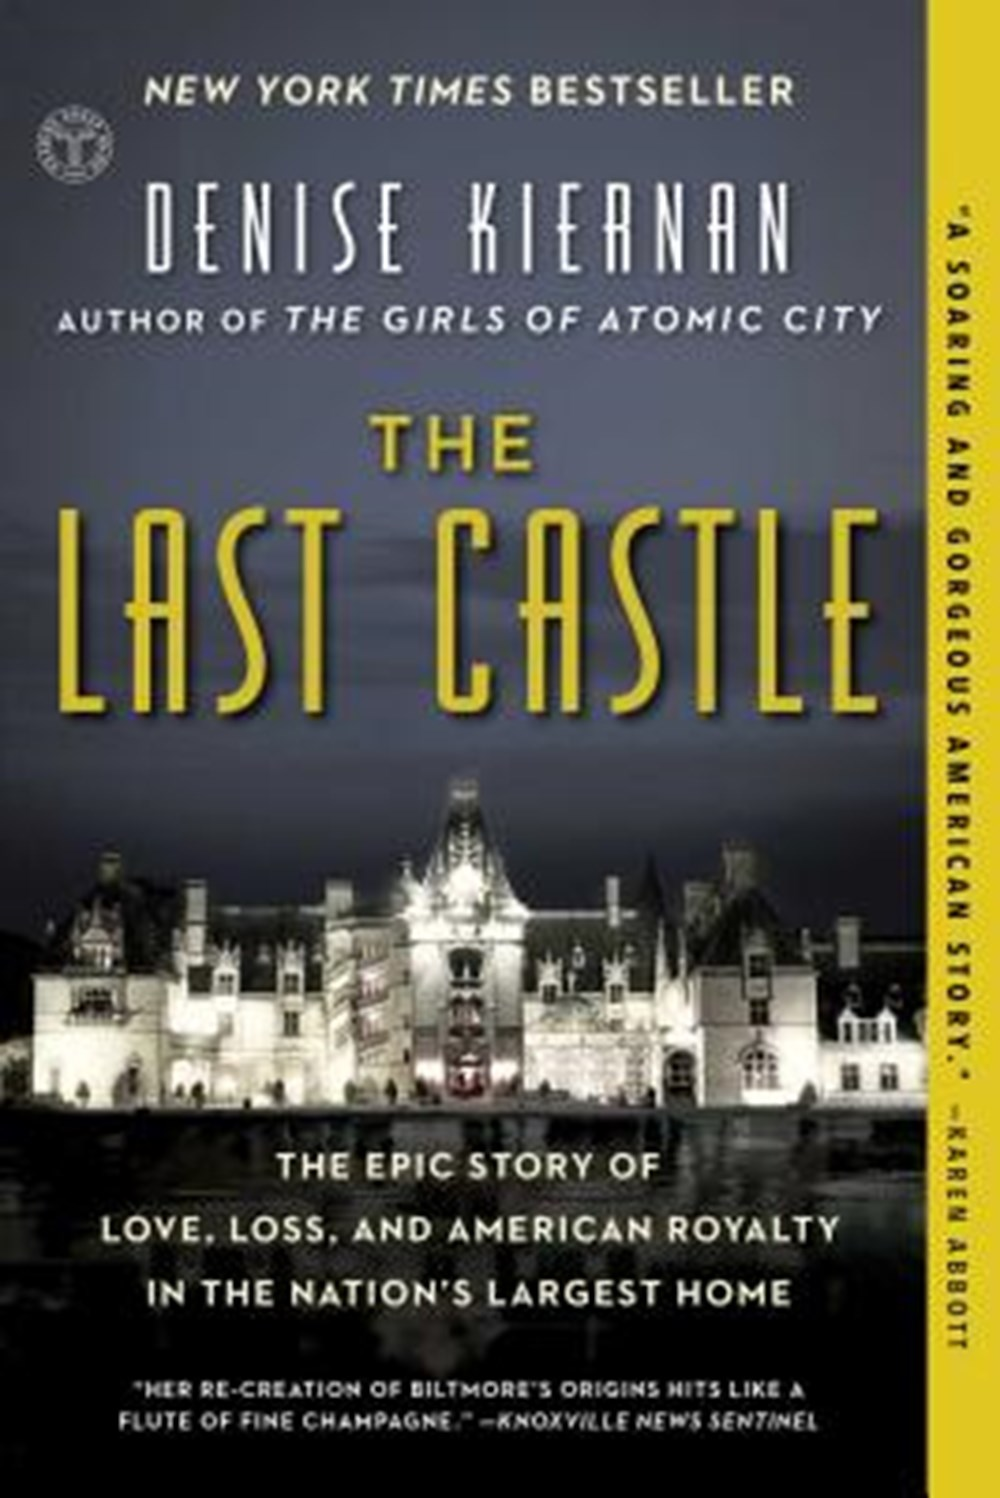 Last Castle The Epic Story of Love, Loss, and American Royalty in the Nation's Largest Home